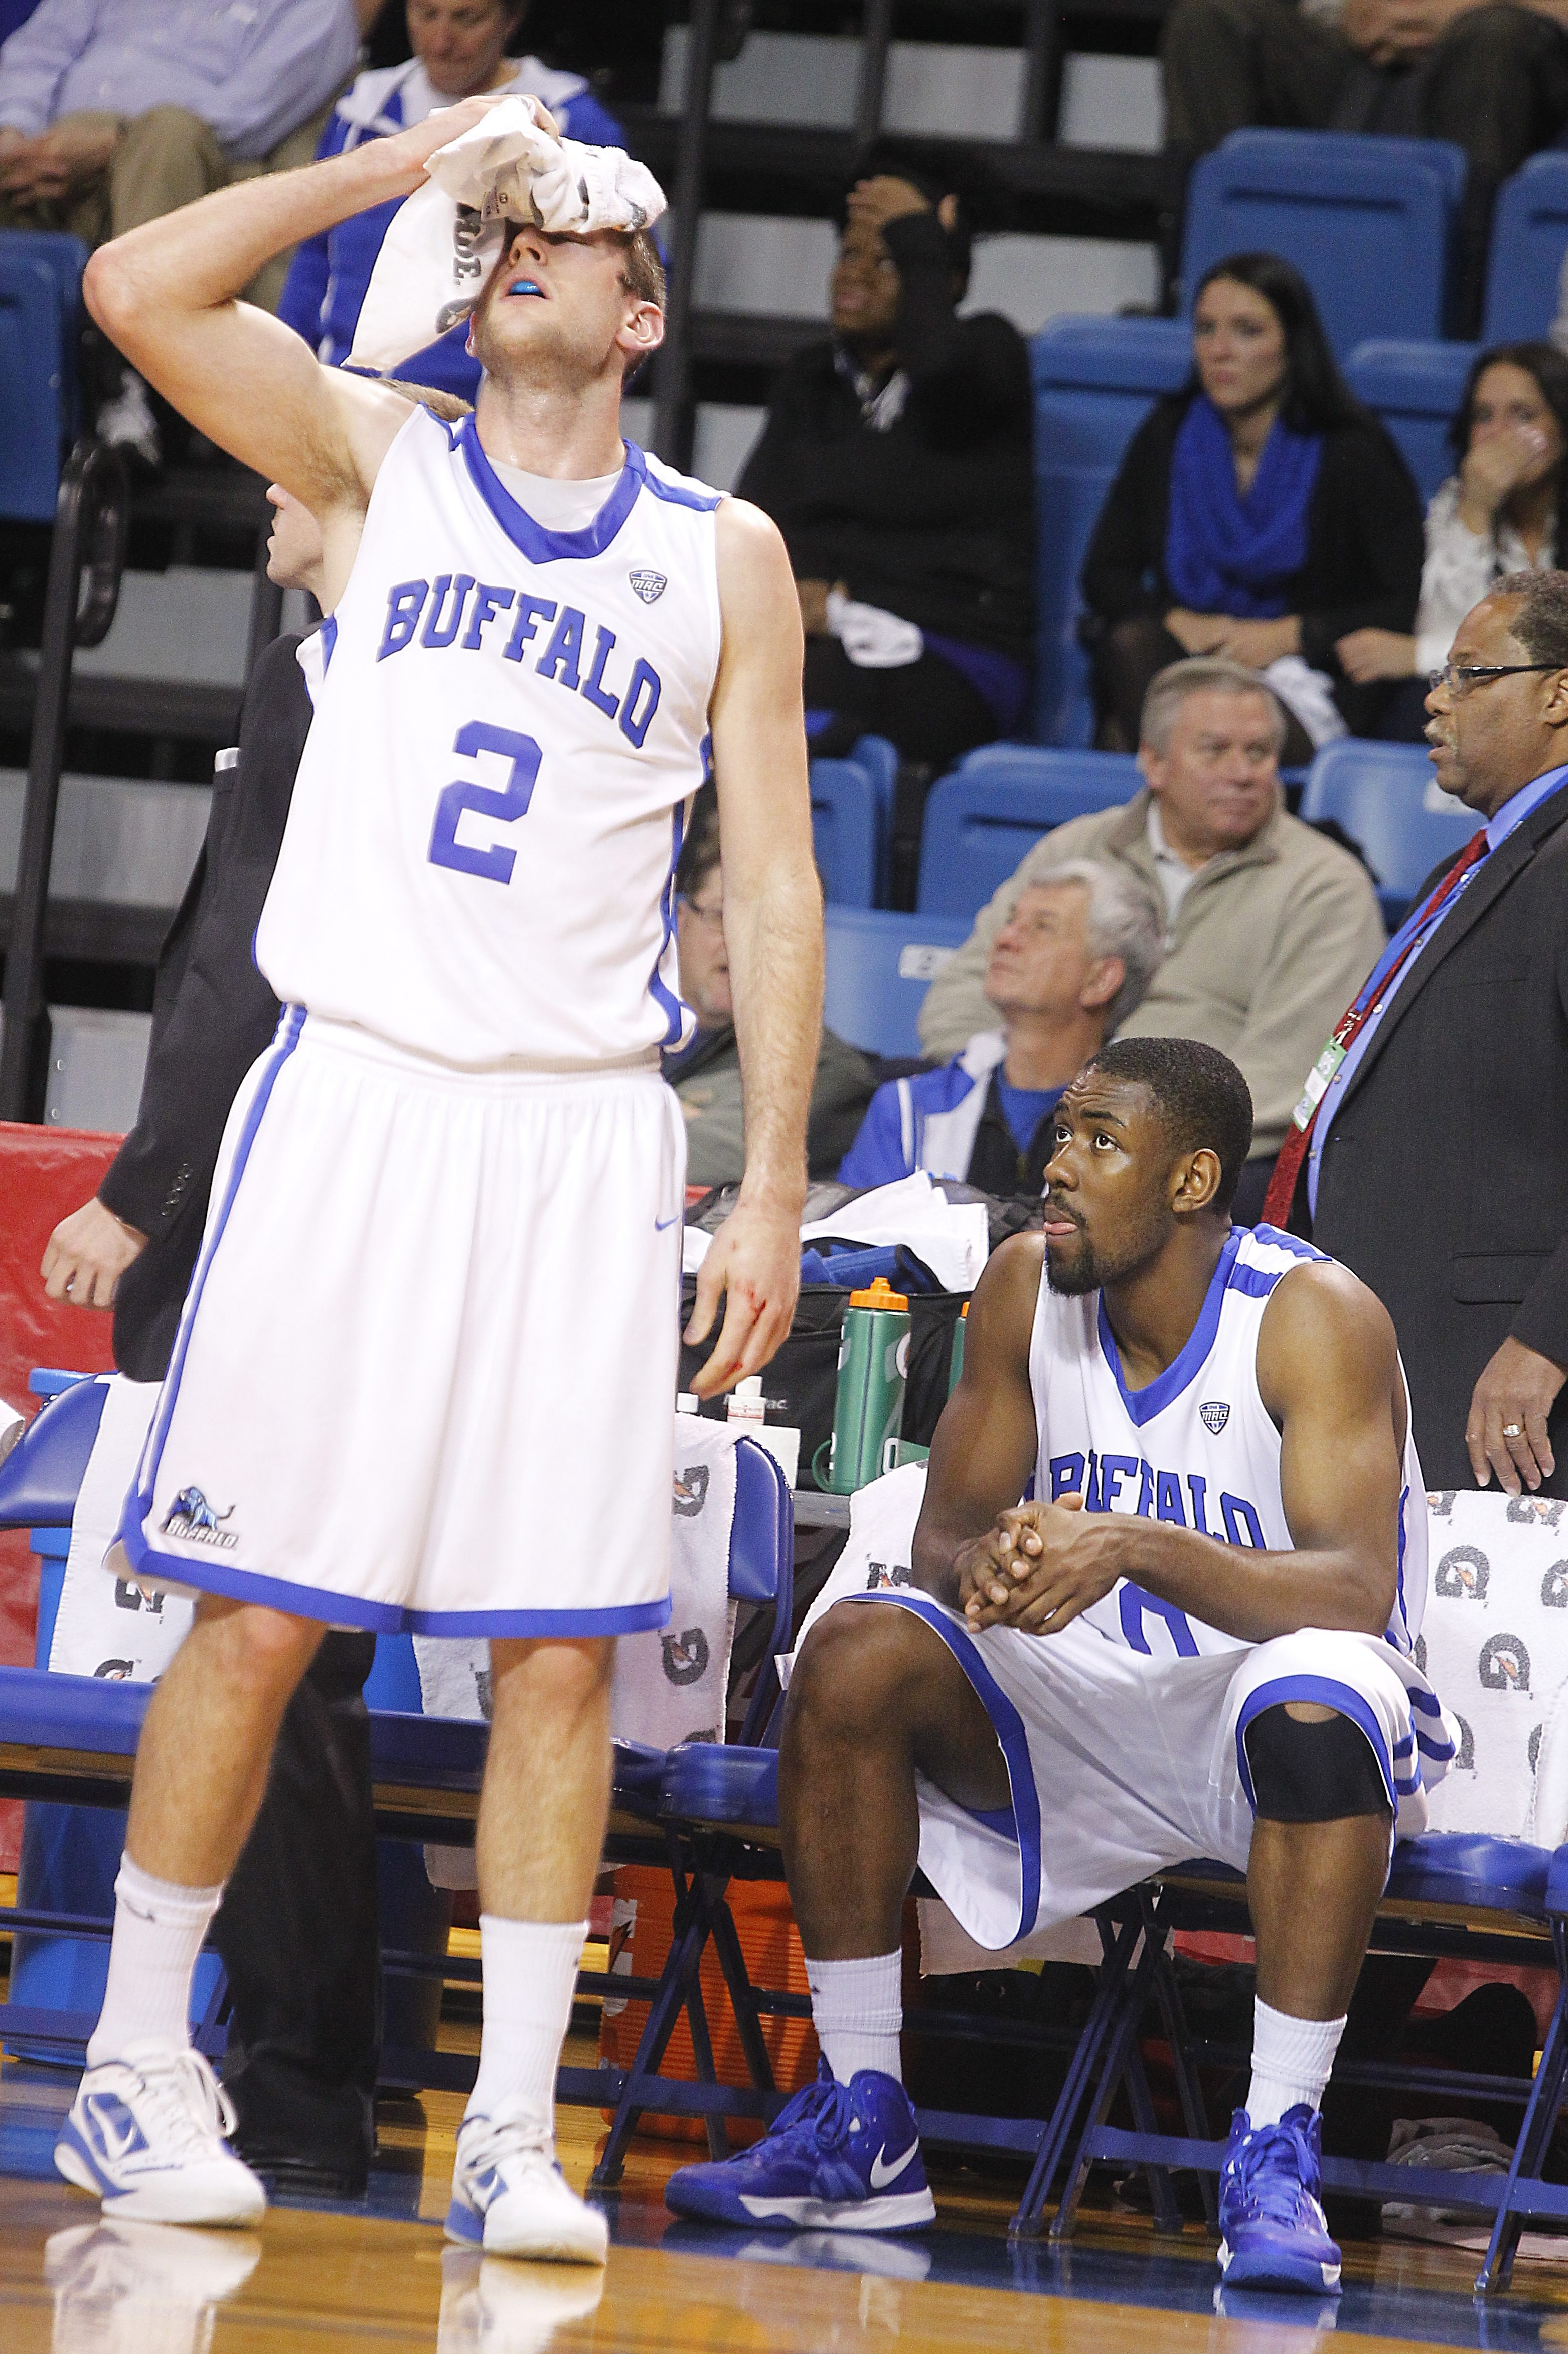 UB's Will Regan applies ice to his forehead after a Temple player elbowed him in the first half.